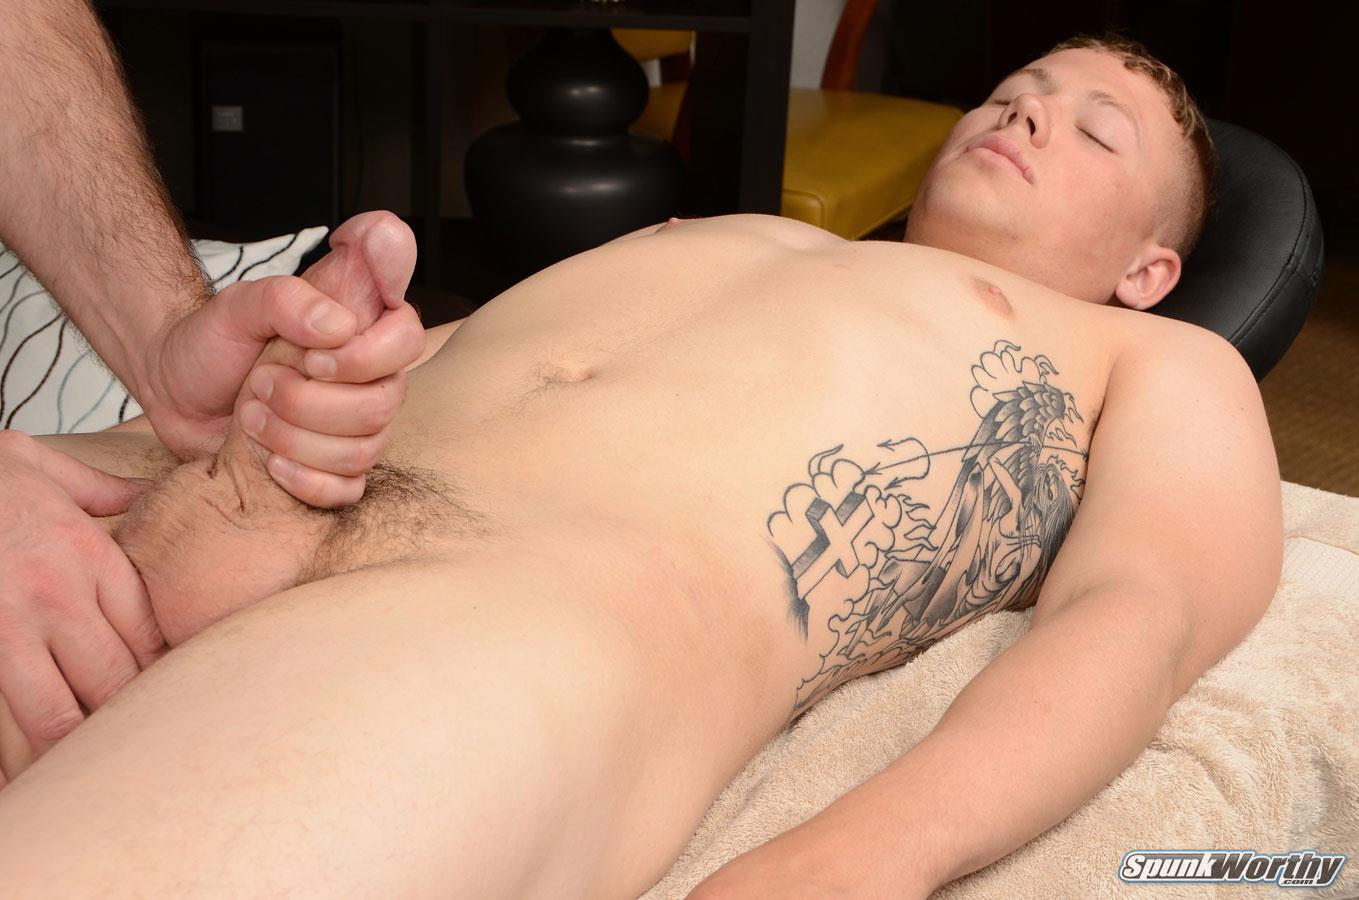 Spunk Worthy Sean Straight Marine Getting Massage With Happy Ending Amateur Gay Porn 09 Straight Marine Gets A Massage With Happy Ending From A Guy